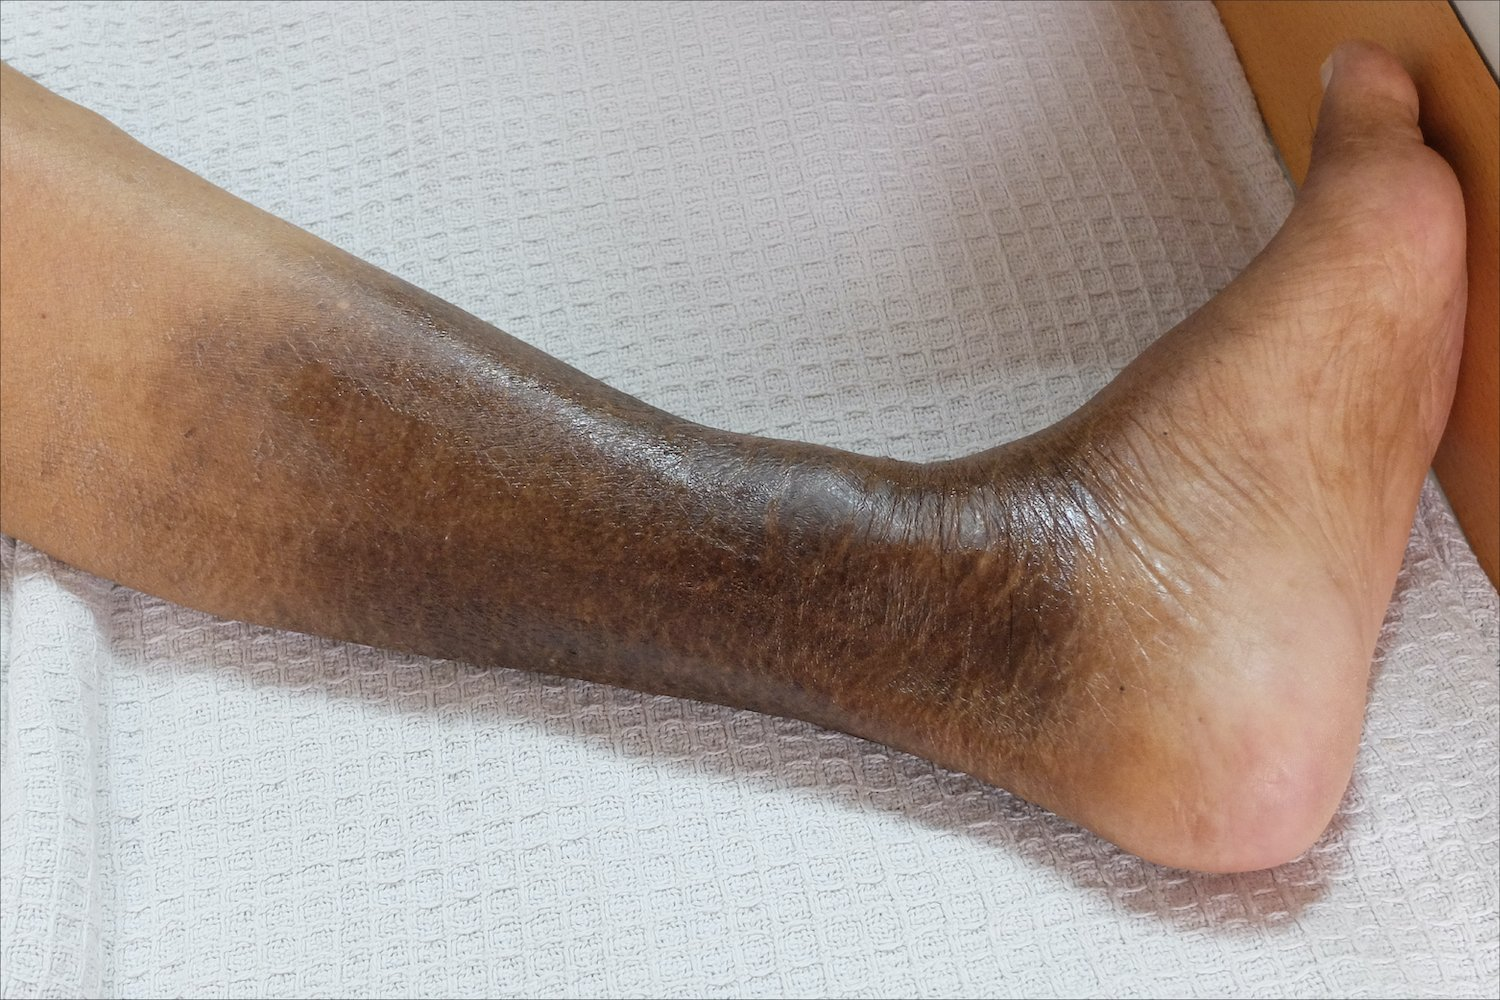 Complication of Venous Ulcers